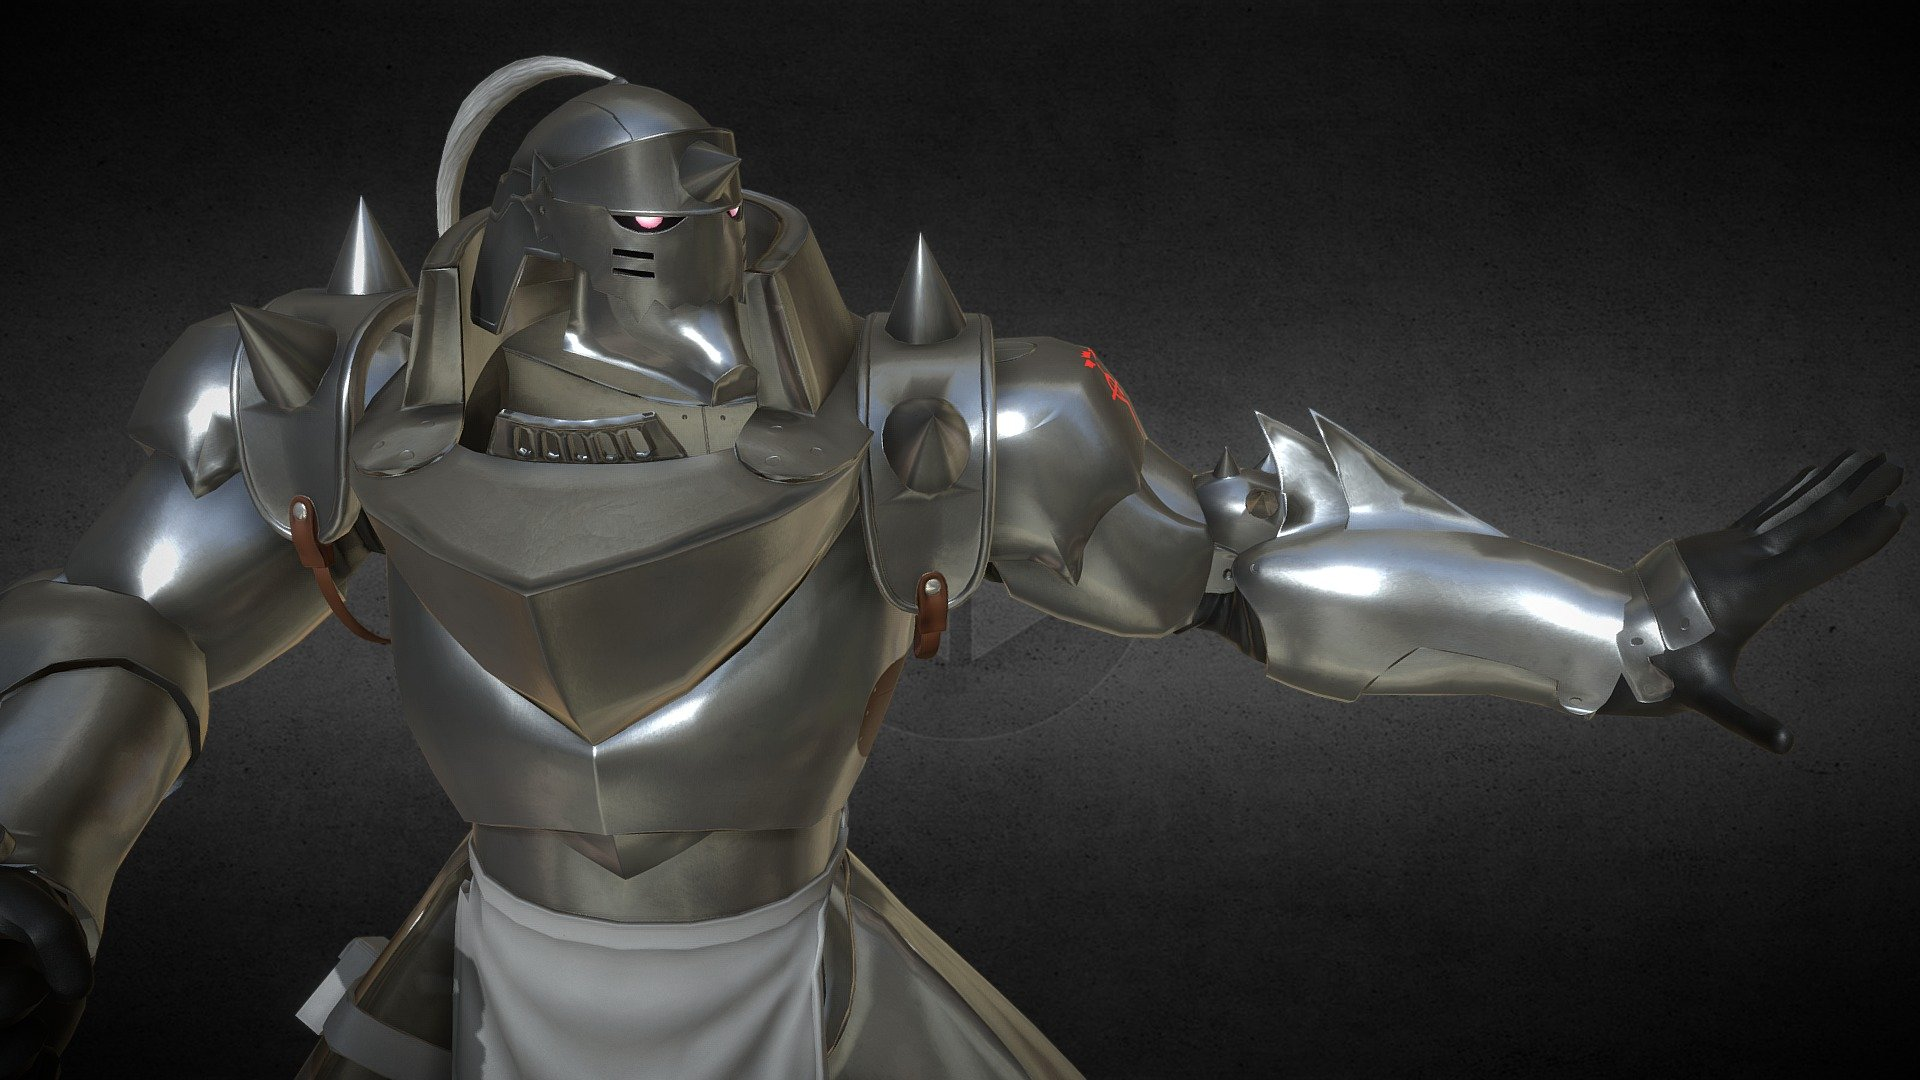 Fullmetal Alchemist Brotherhood Alphonse Elric 3d Model By